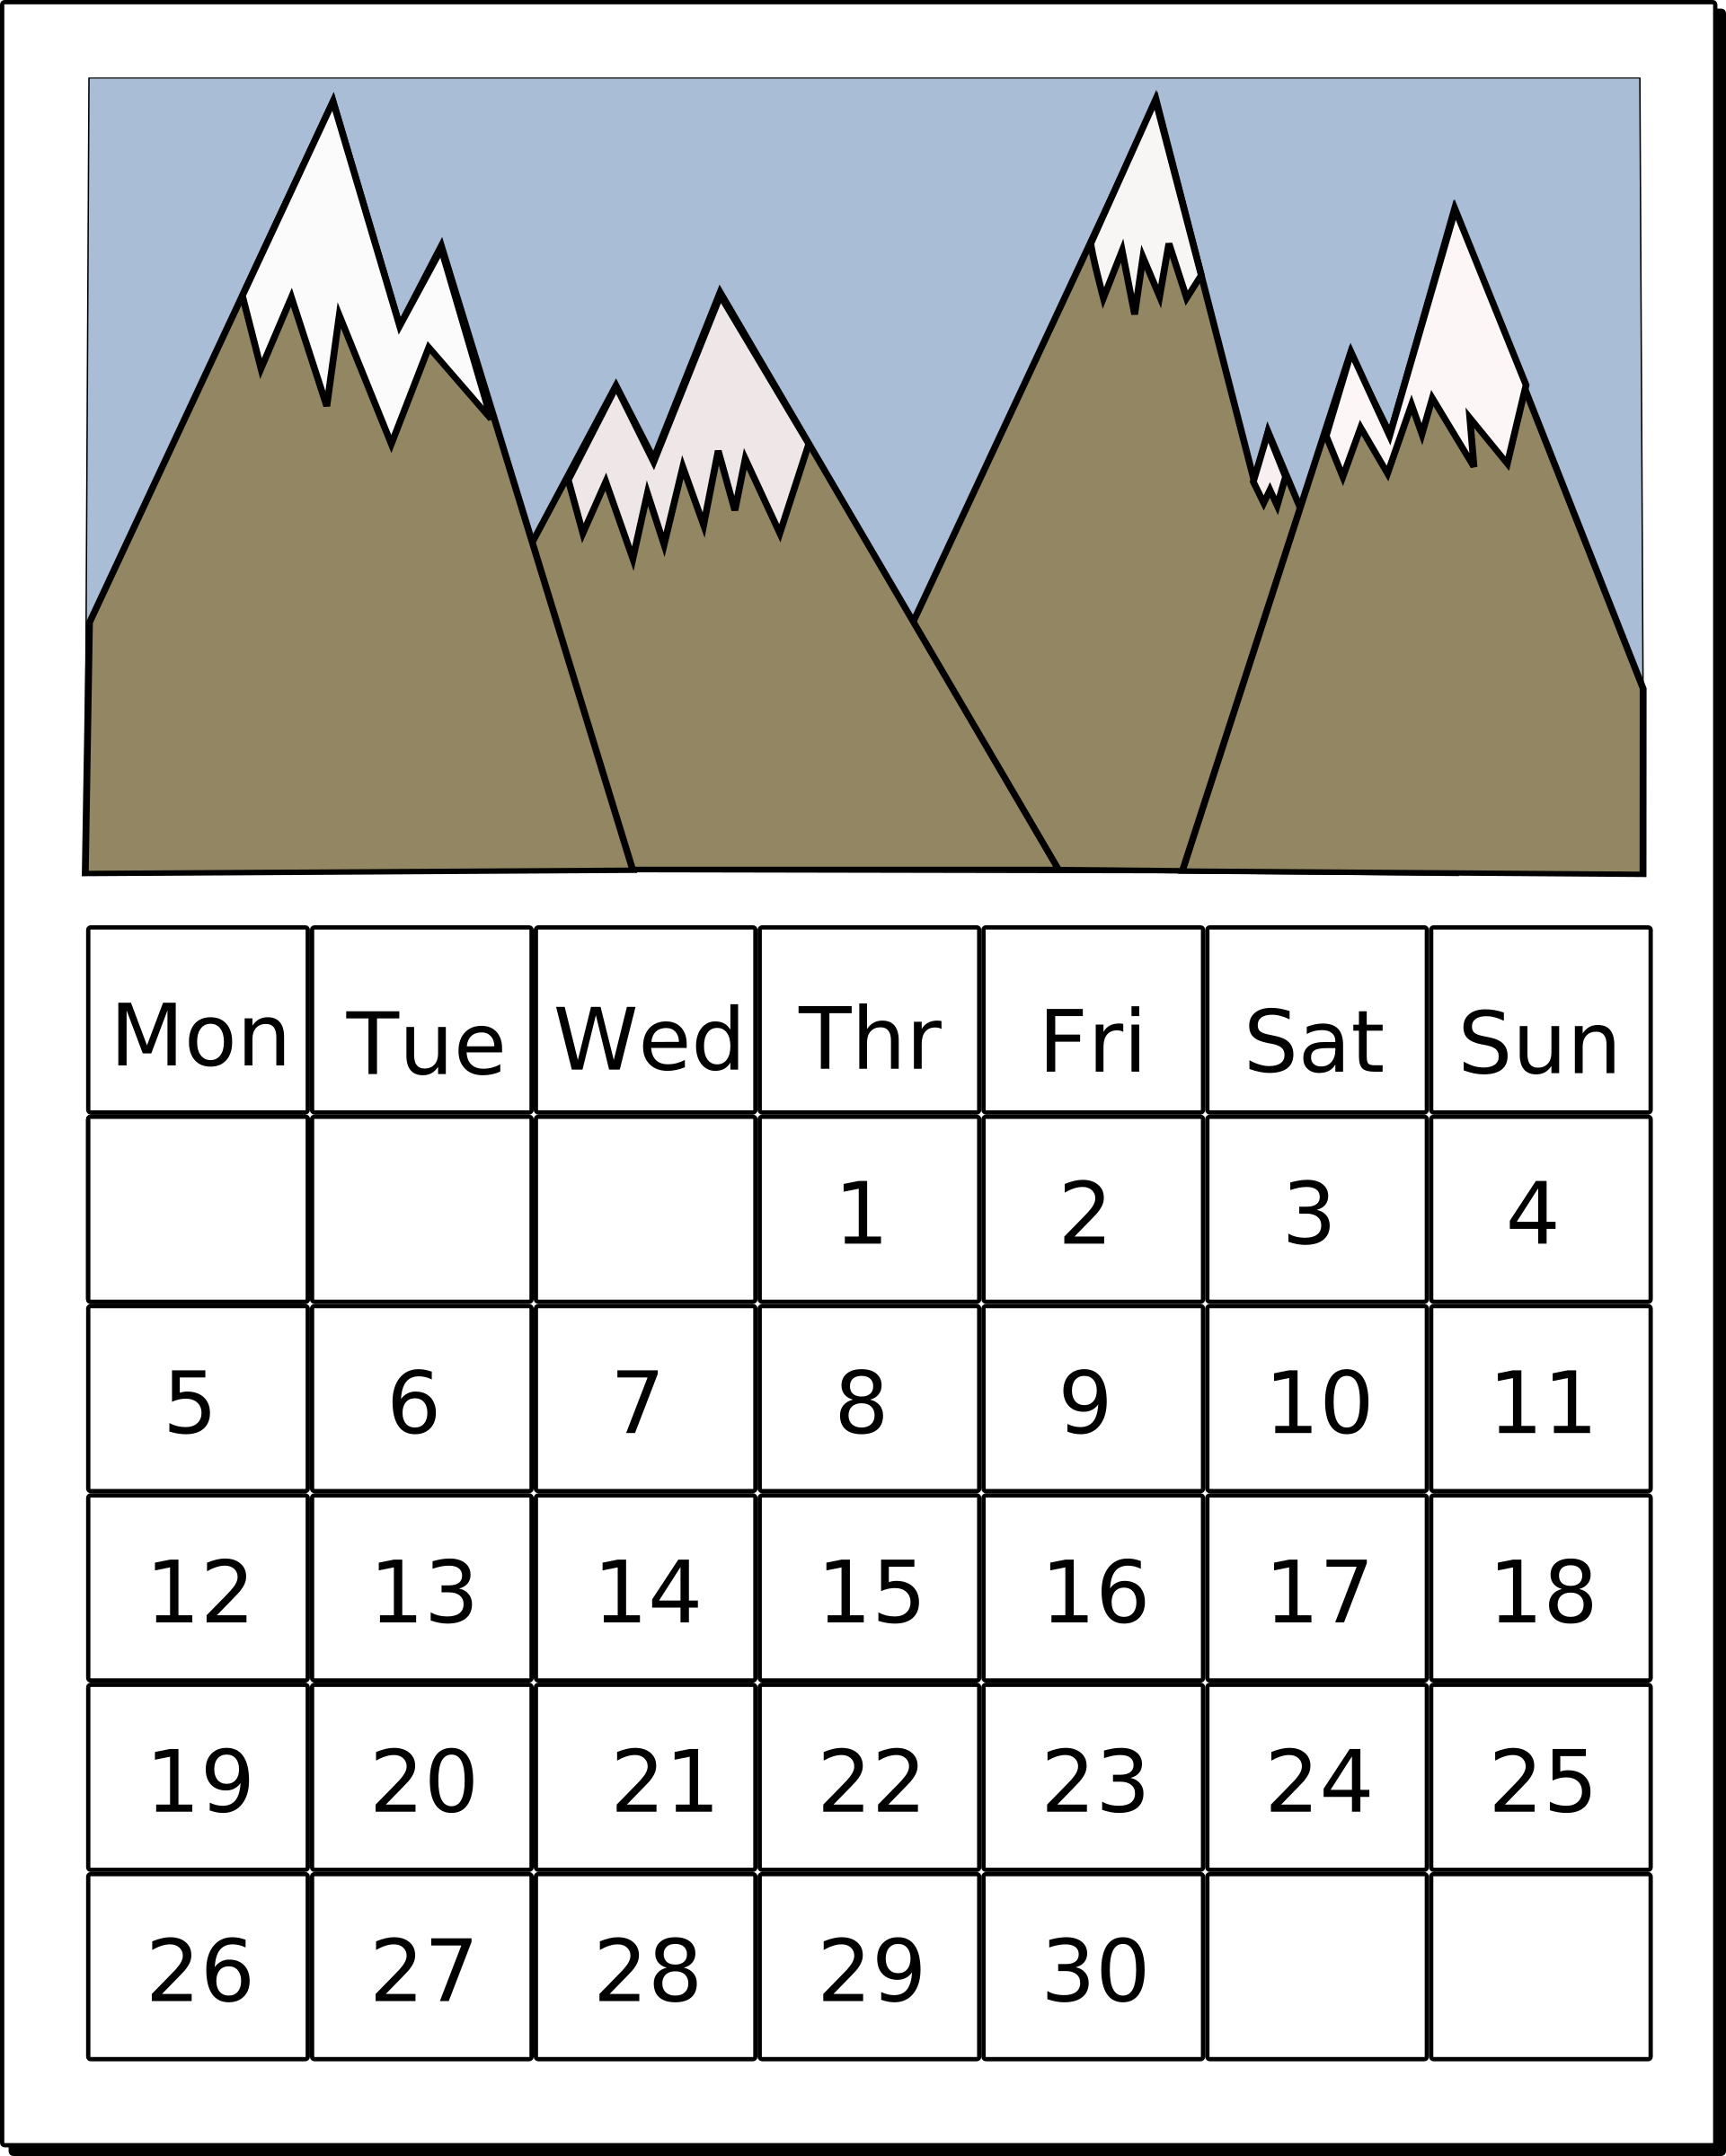 Calendar Drawing For Kids : Calendar of stem related seasonal events and holidays